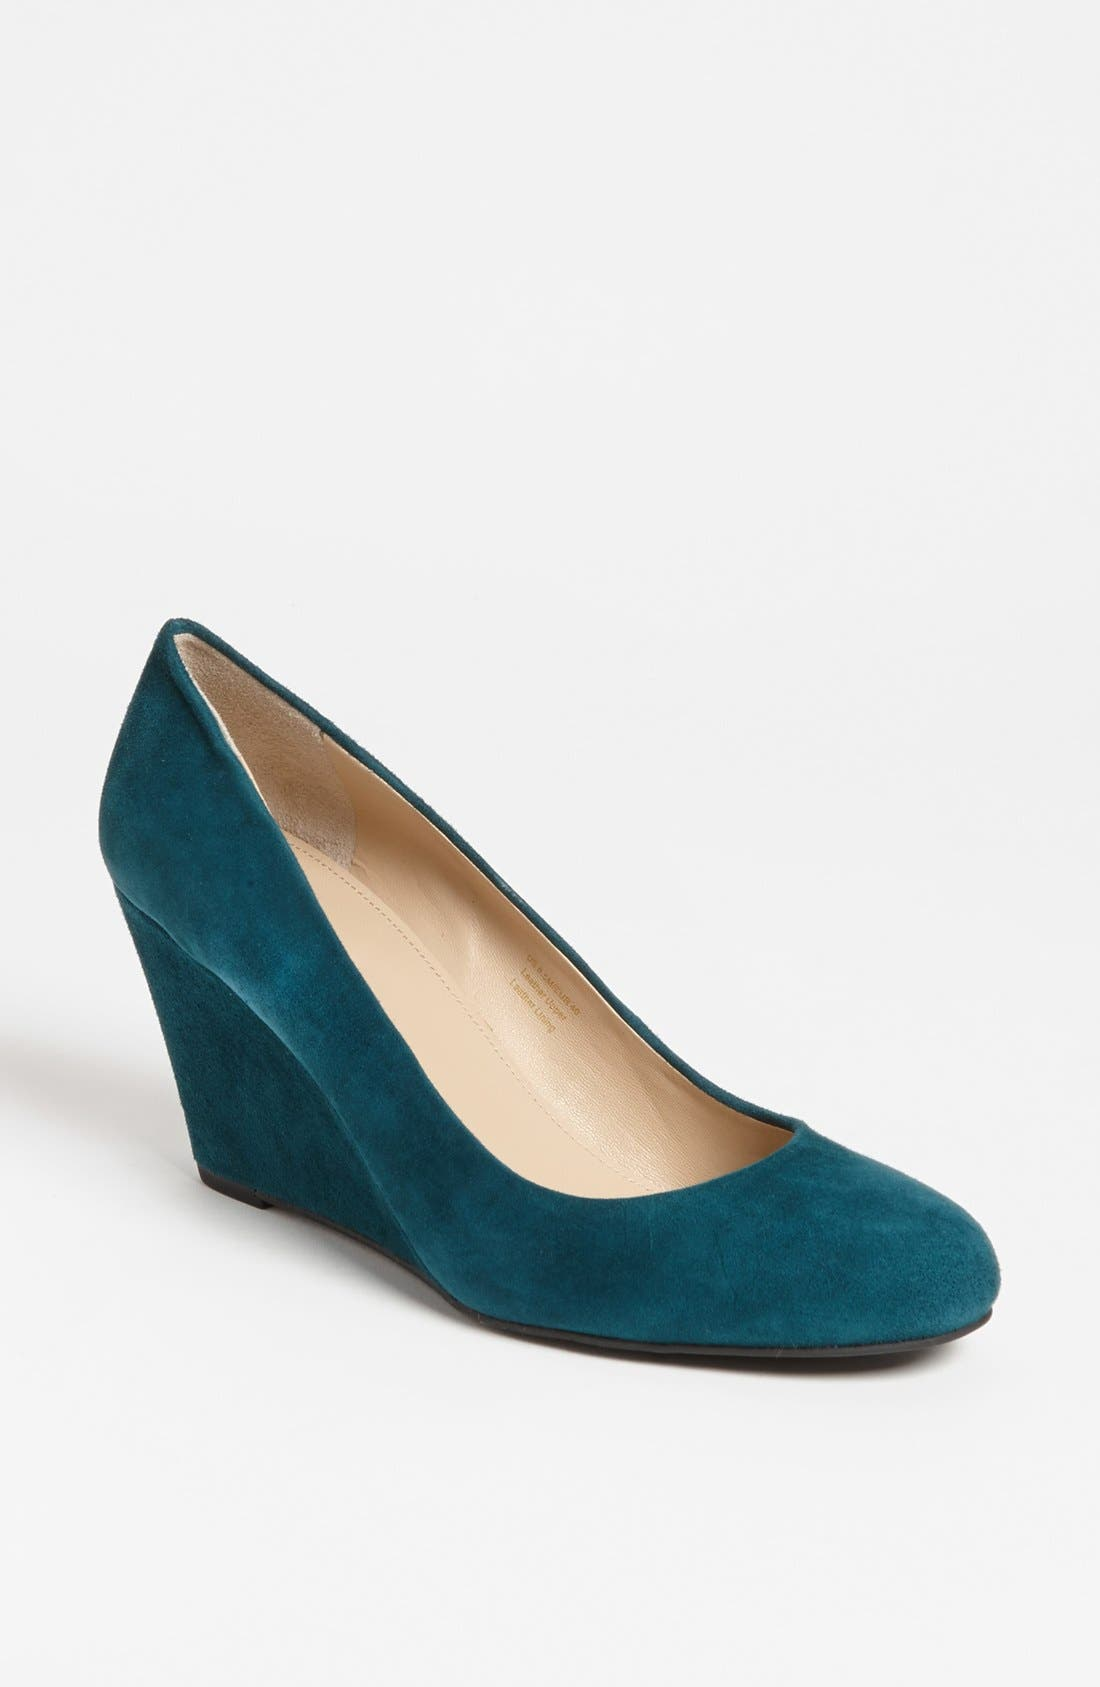 Main Image - Via Spiga 'Farley' Wedge Pump